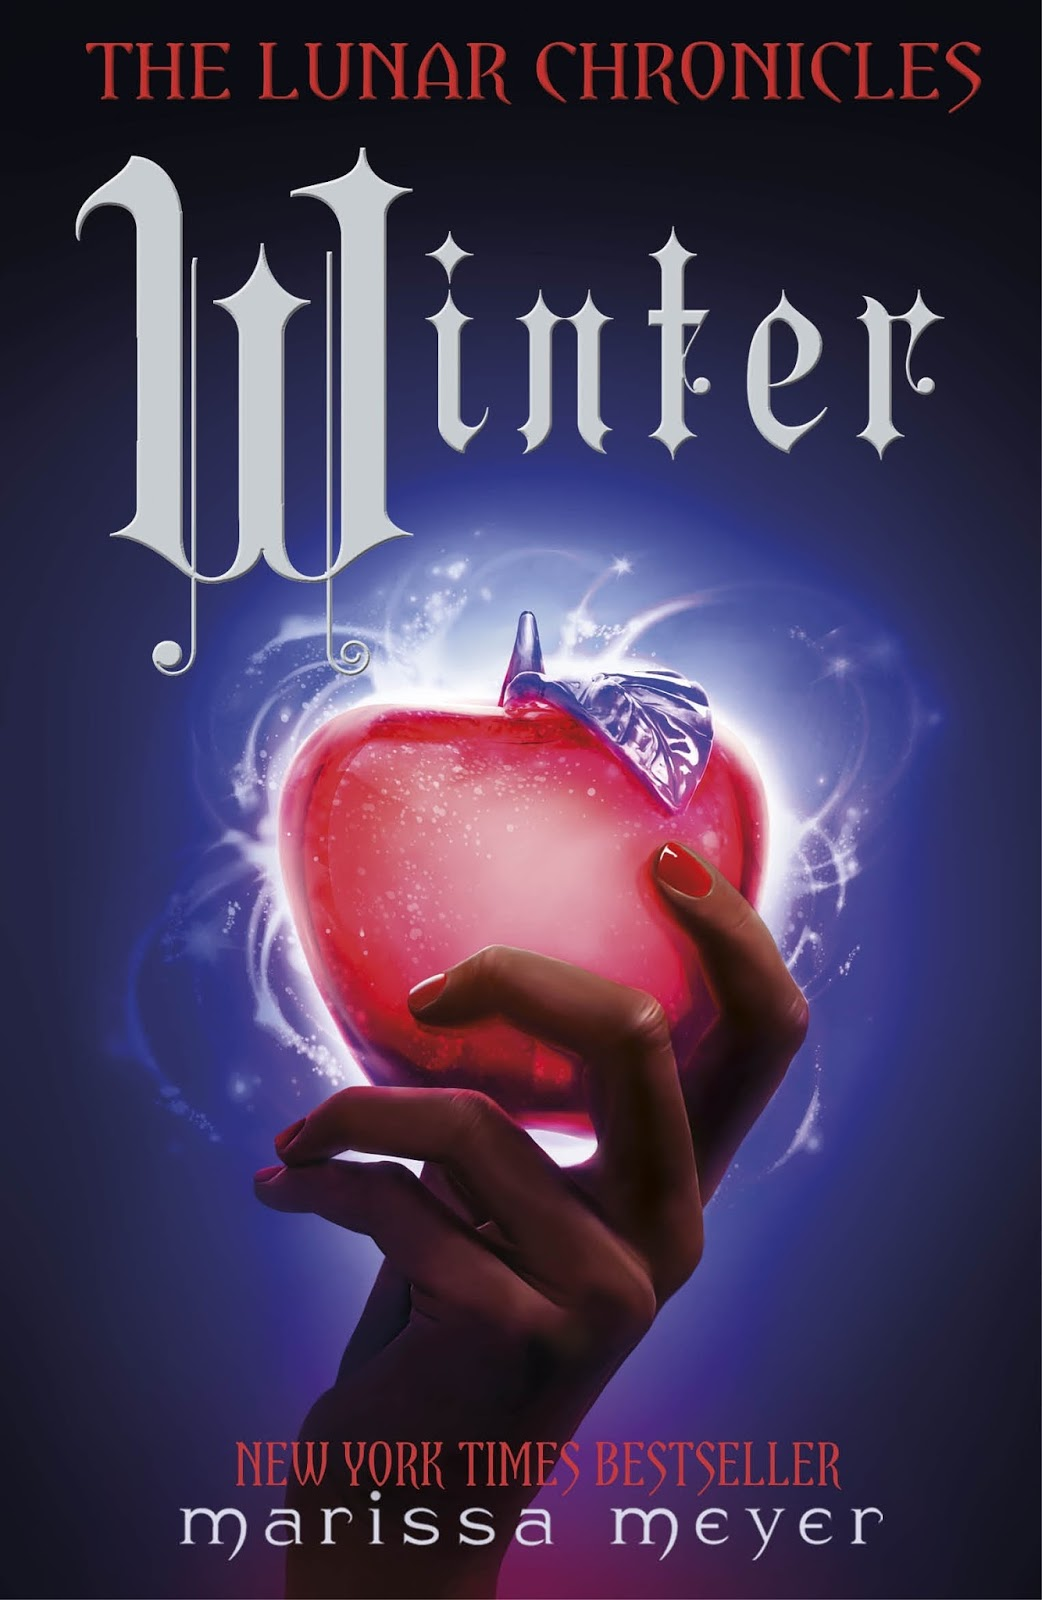 http://nothingbutn9erz.blogspot.co.at/2015/11/winter-marissa-meyer-rezension.html